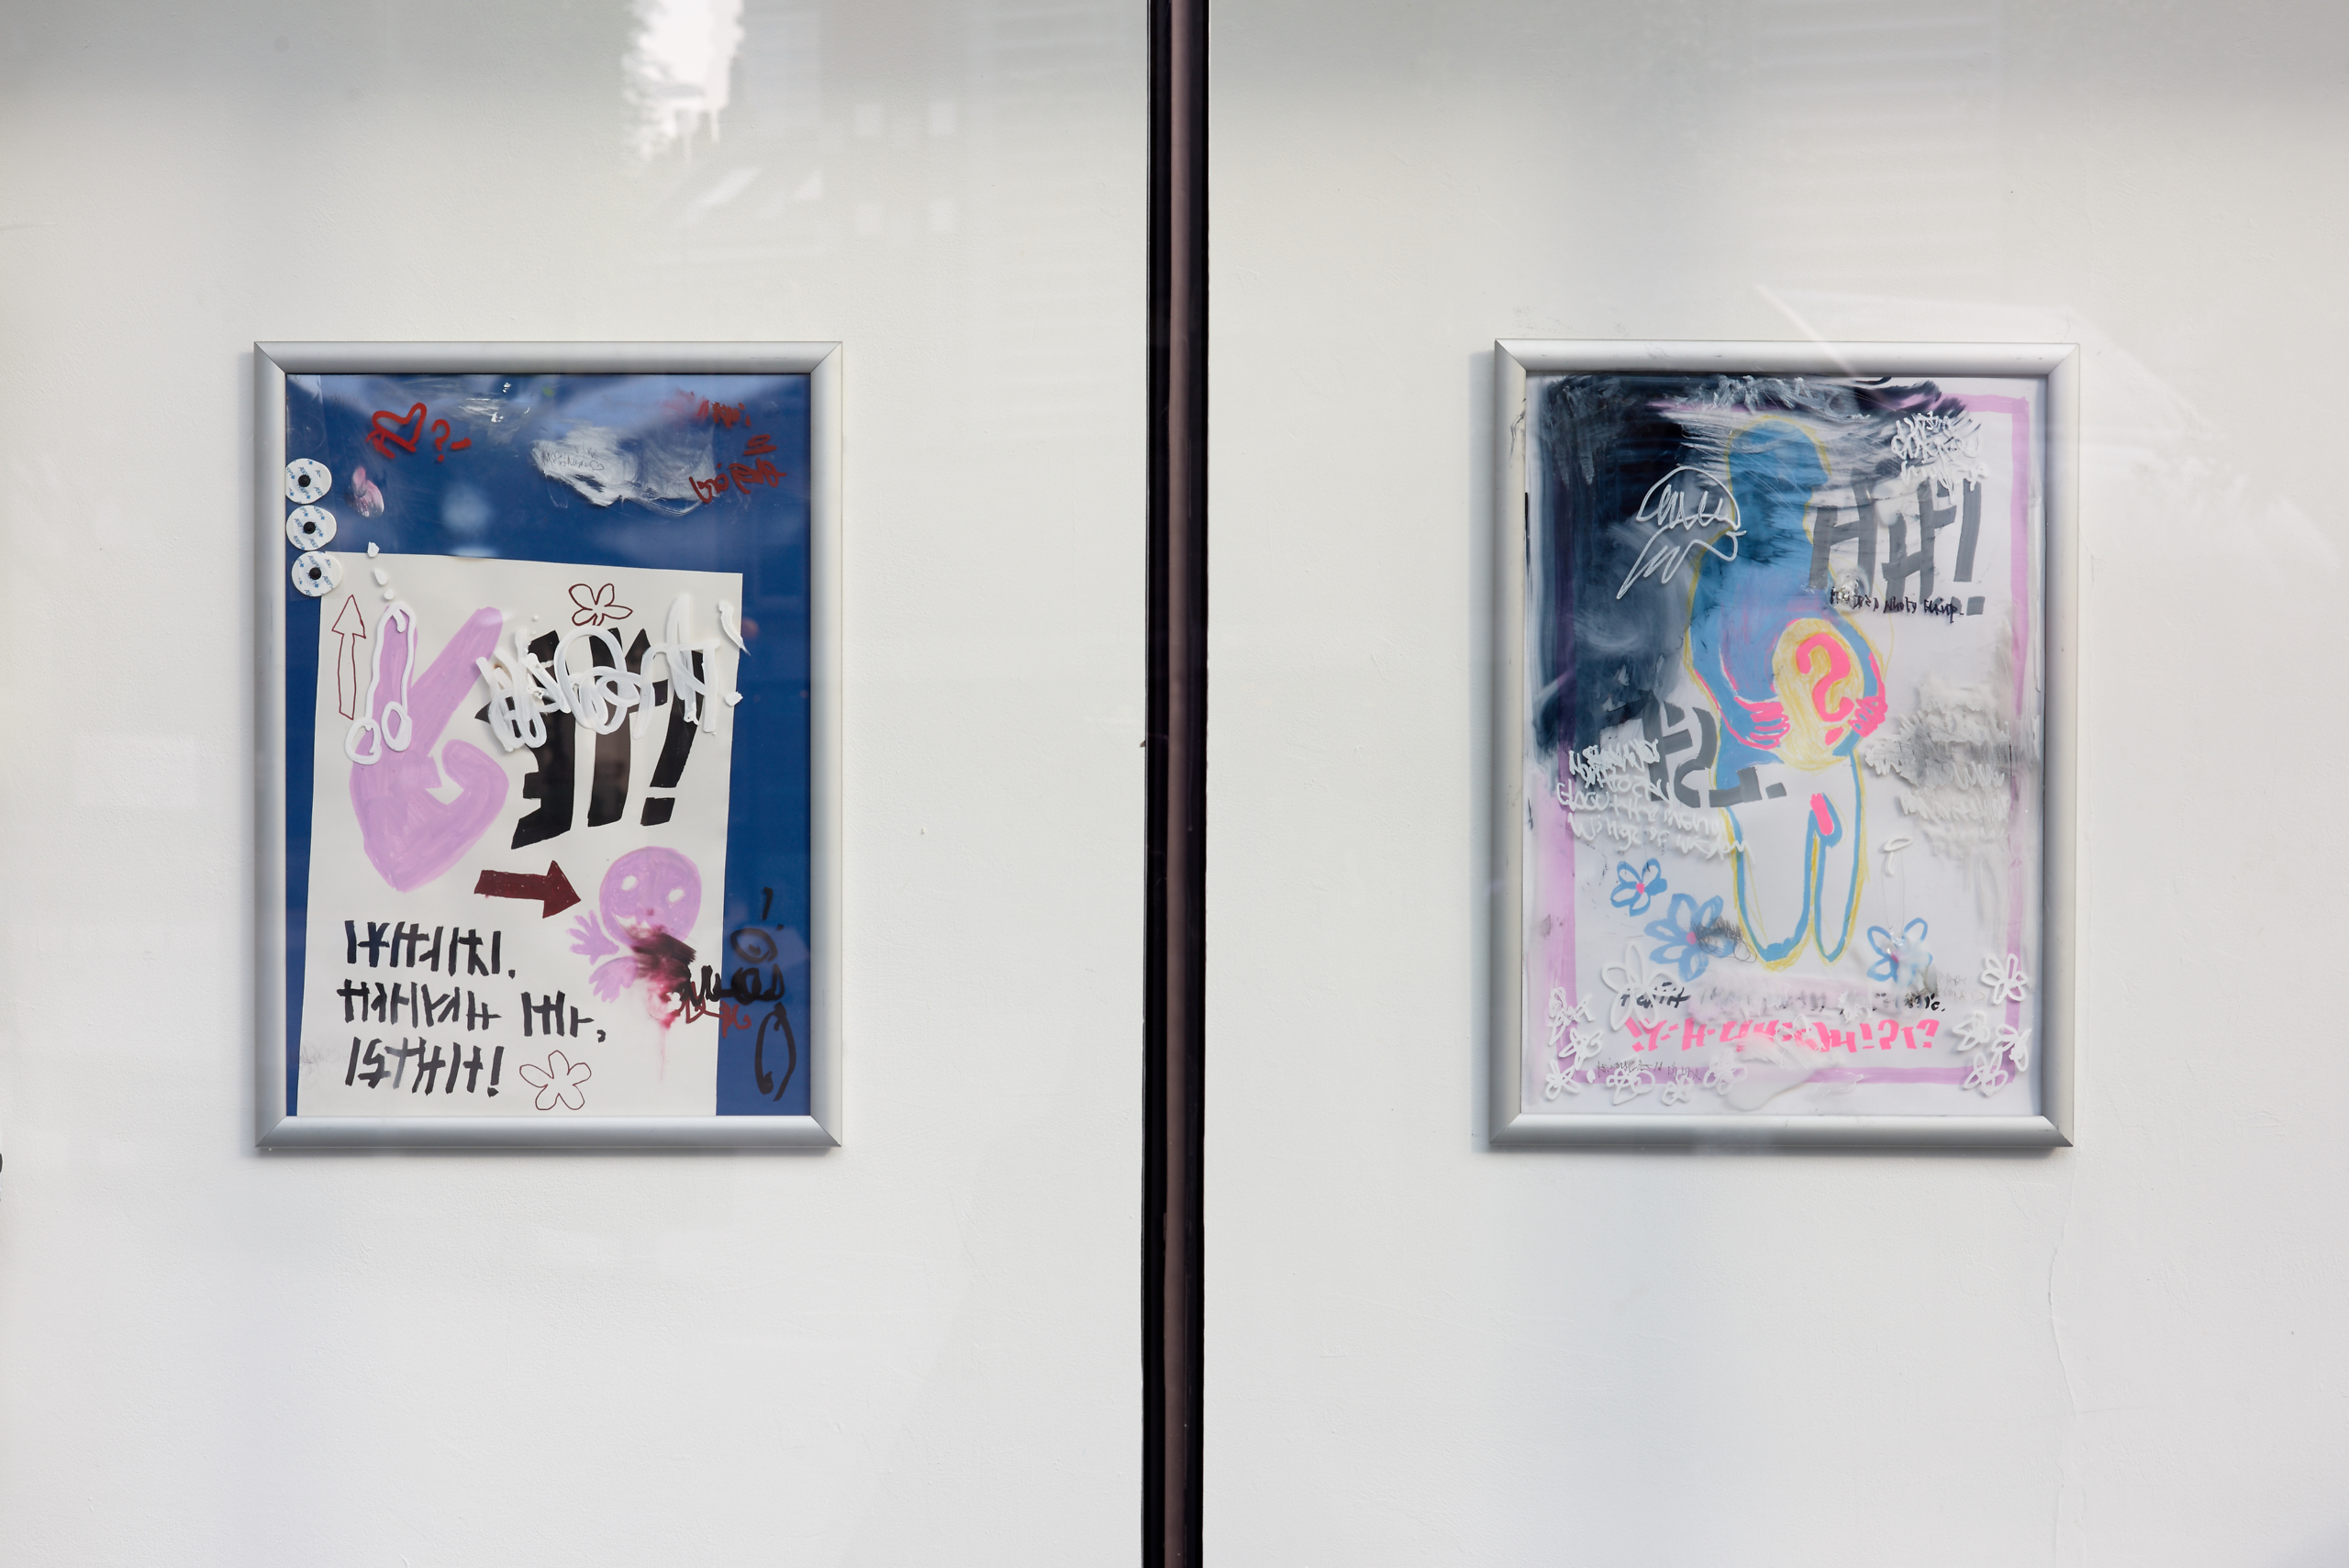 Jesse Darling, Untitled (waiting room poster/municipal hospital series), 2017. Ink on paper, ink on plastic, with aluminum frame. VITRINE, London. Photographer : Jonathan Bassett.